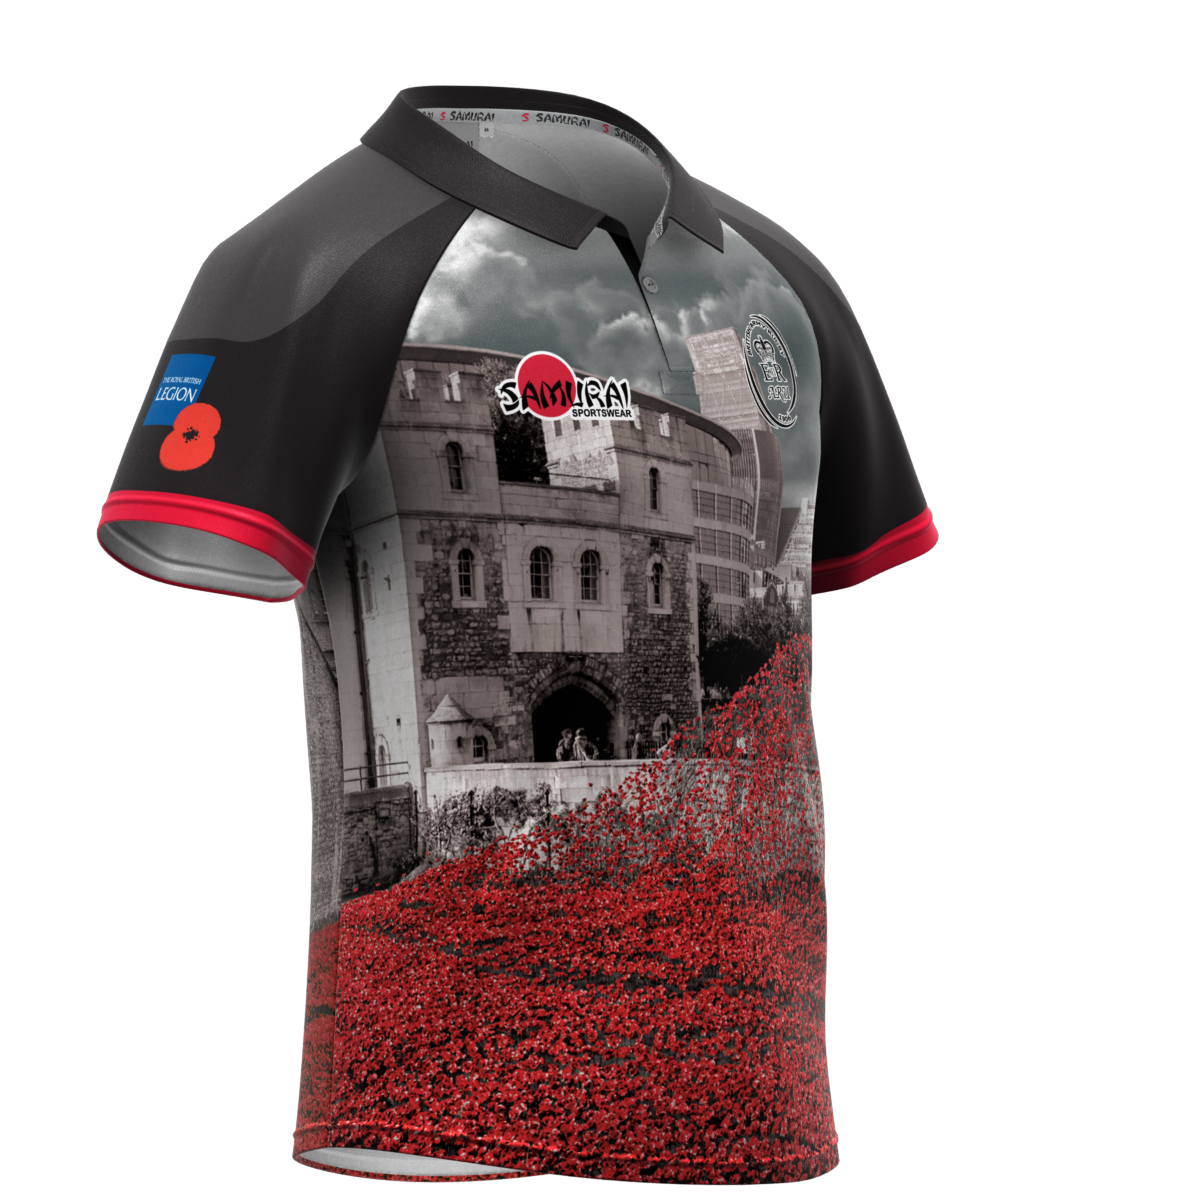 Very proud to launch our 6th annual #poppyshirt @samurai_sports 'In Flanders Fields' https://t.co/mlj4HXkPB1 https://t.co/Na72pmVrwo